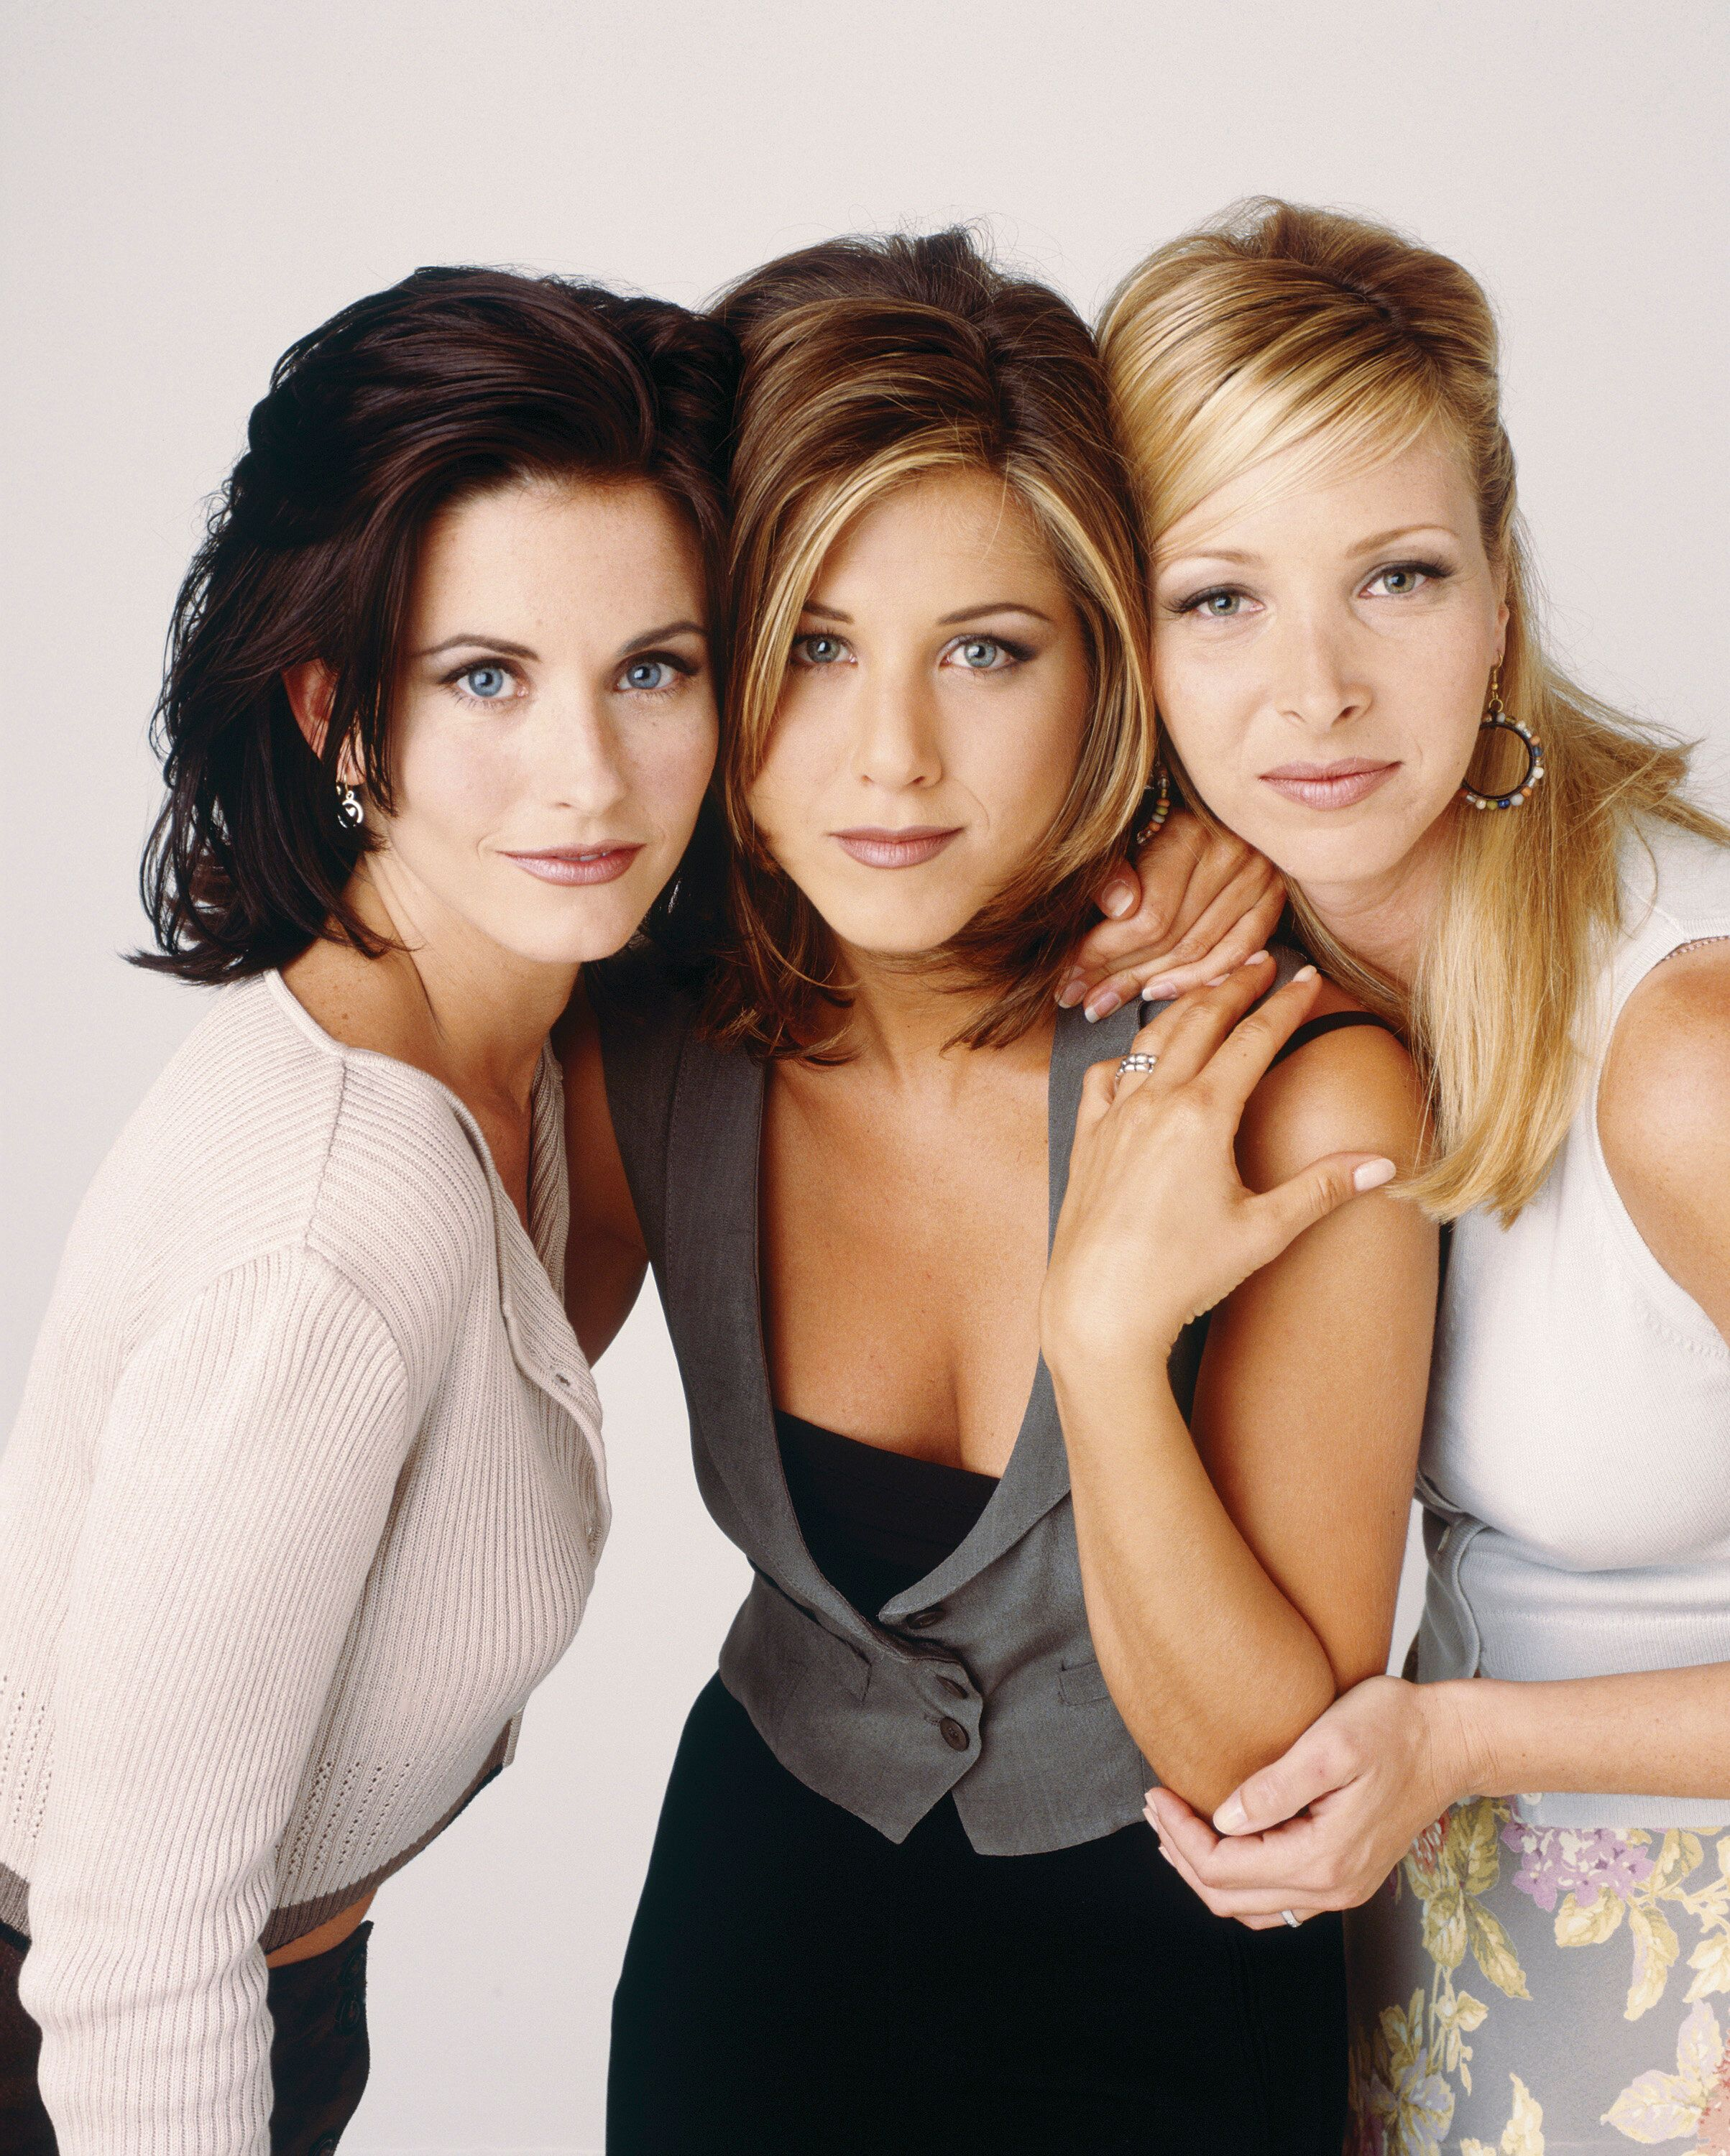 FRIENDS -- Pictured: (l-r) Courteney Cox as Monica Geller, Jennifer Aniston as Rachel Green, Lisa Kudrow as Phoebe Buffay in 'Friends', circa 1995. (Photo by NBC/NBCU Photo Bank via Getty Images)